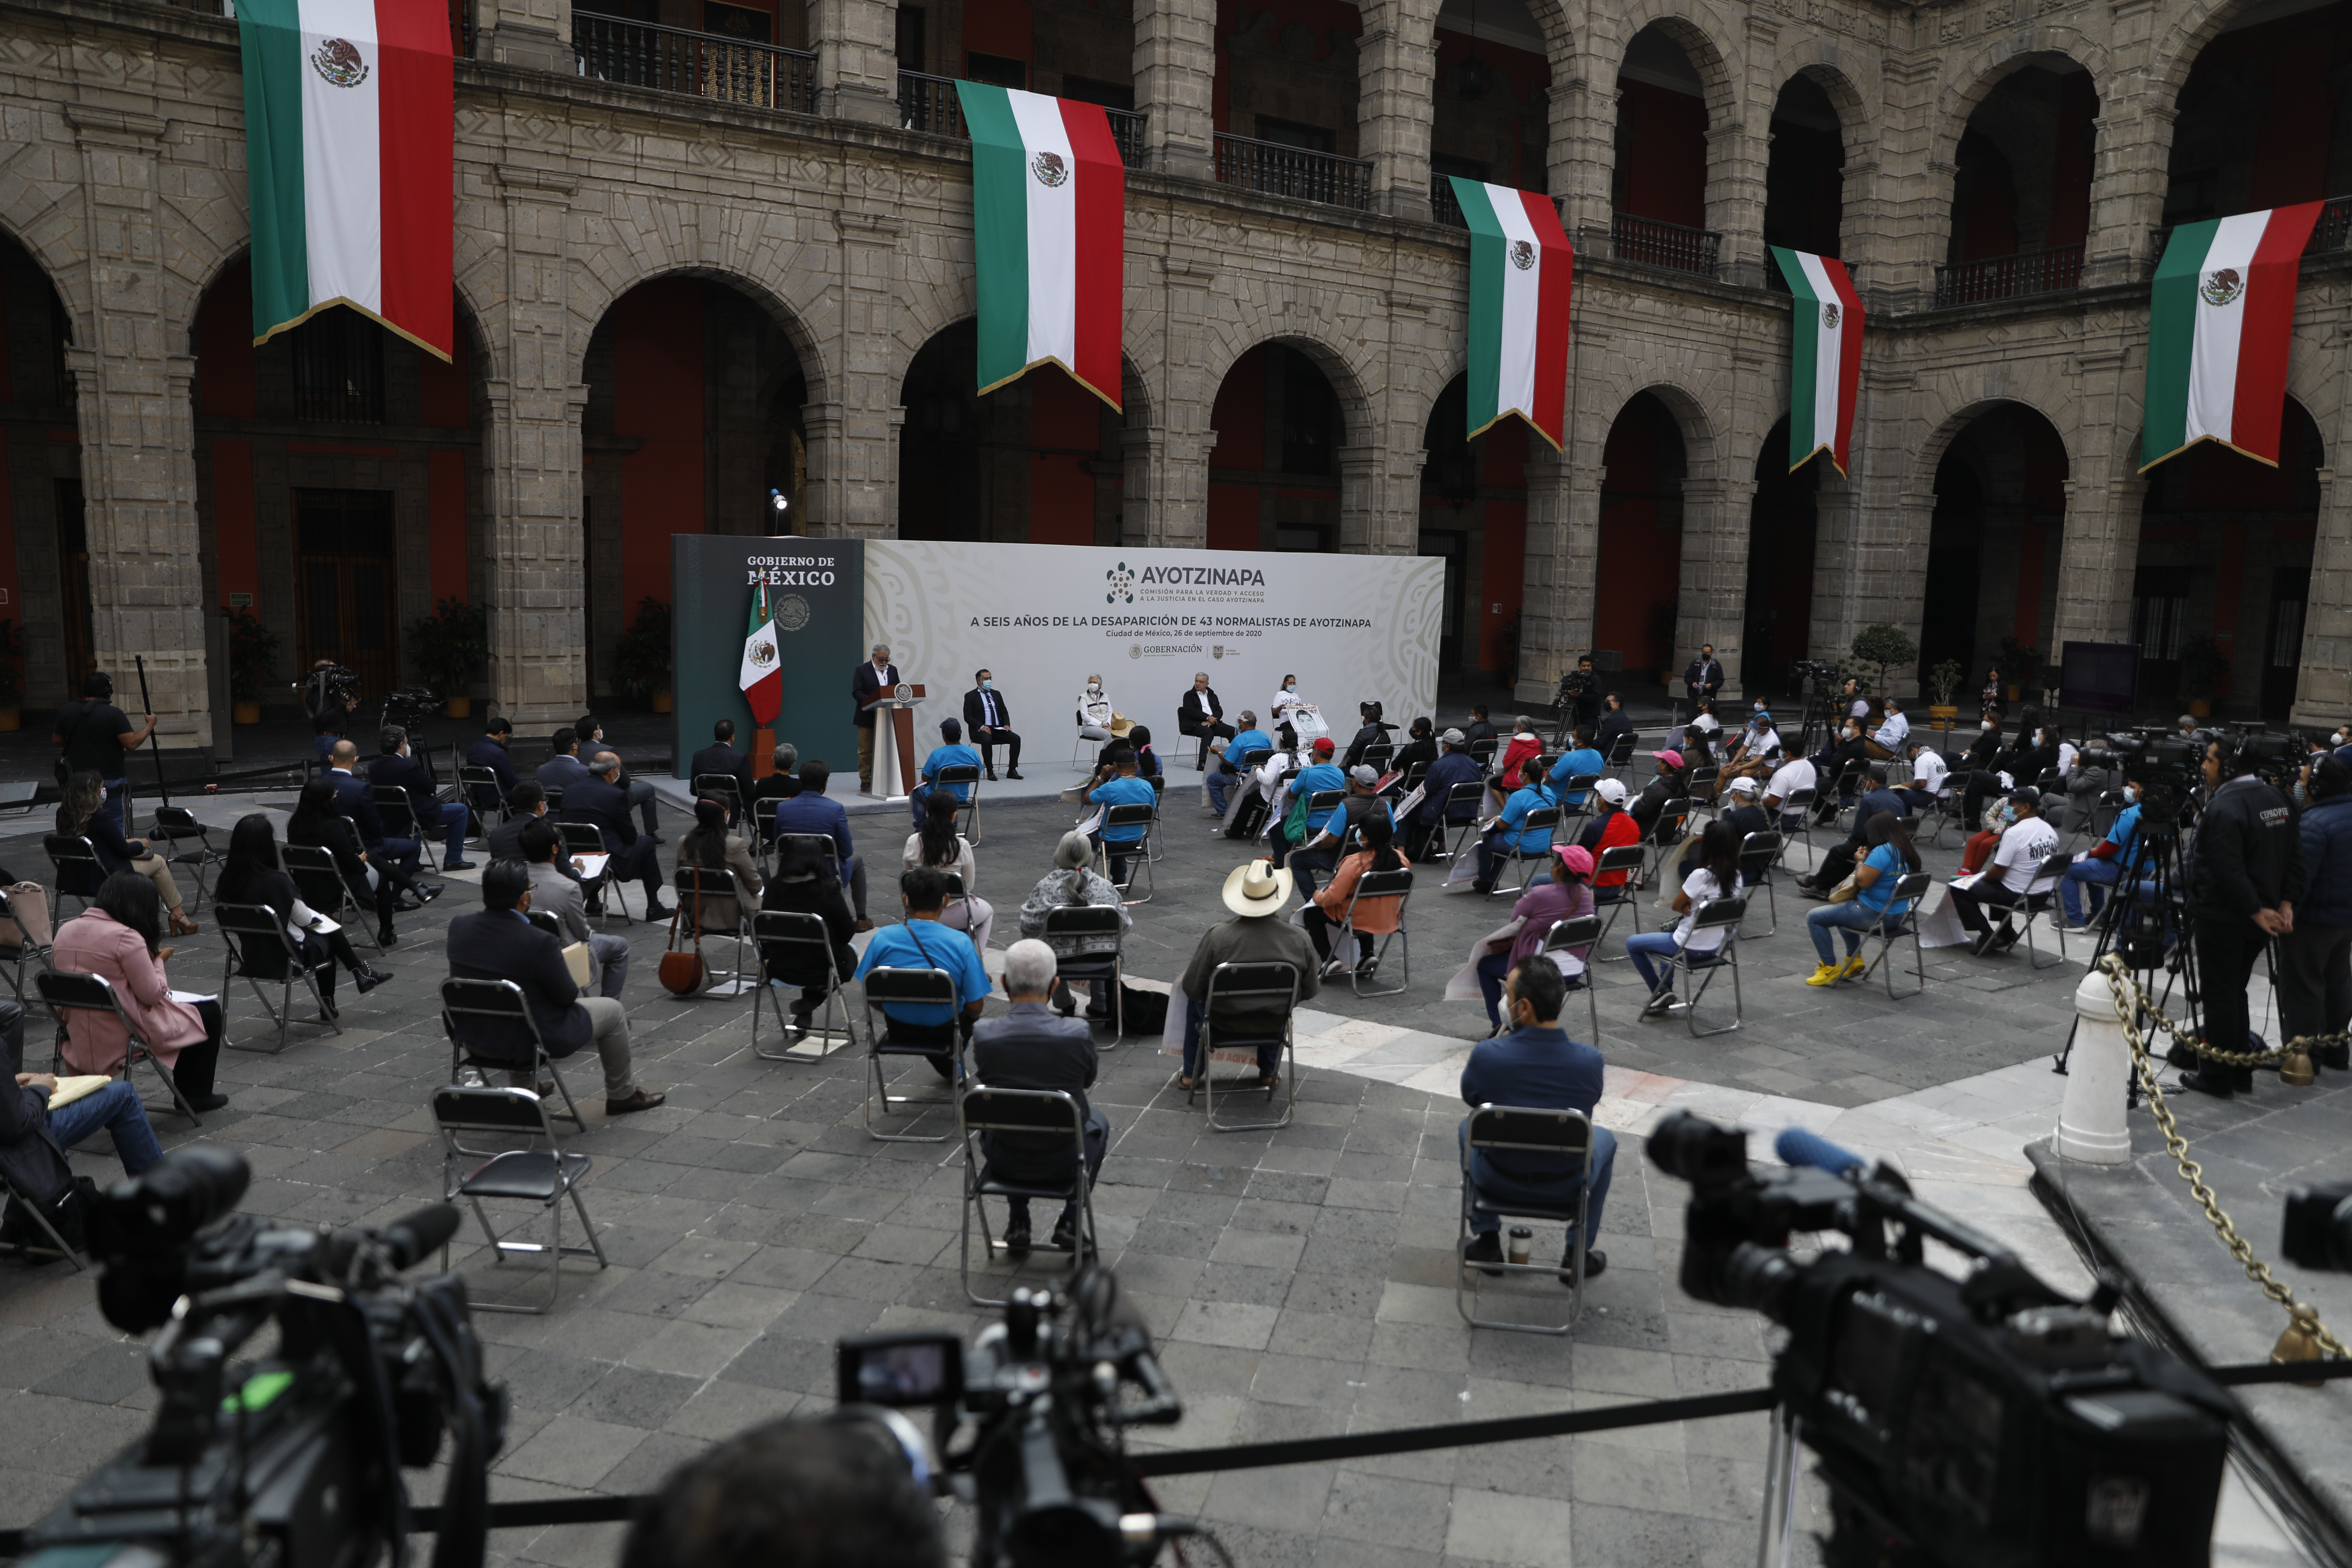 Mexico's President Andres Manuel Lopez Obrador, left, and Deputy Interior Secretary Alejandro Encinas, right, applaud for Maria Martinez, mother of Miguel Angel Hernandez Martinez, as she is introduced as a representative of the family members of 43 missing students from the Rural Normal School of Ayotzinapa, during an event to update the ongoing investigations on the sixth anniversary of the students' disappearance, at the National Palace in Mexico City, Saturday, Sept. 26, 2020. (AP Photo/Rebecca Blackwell)